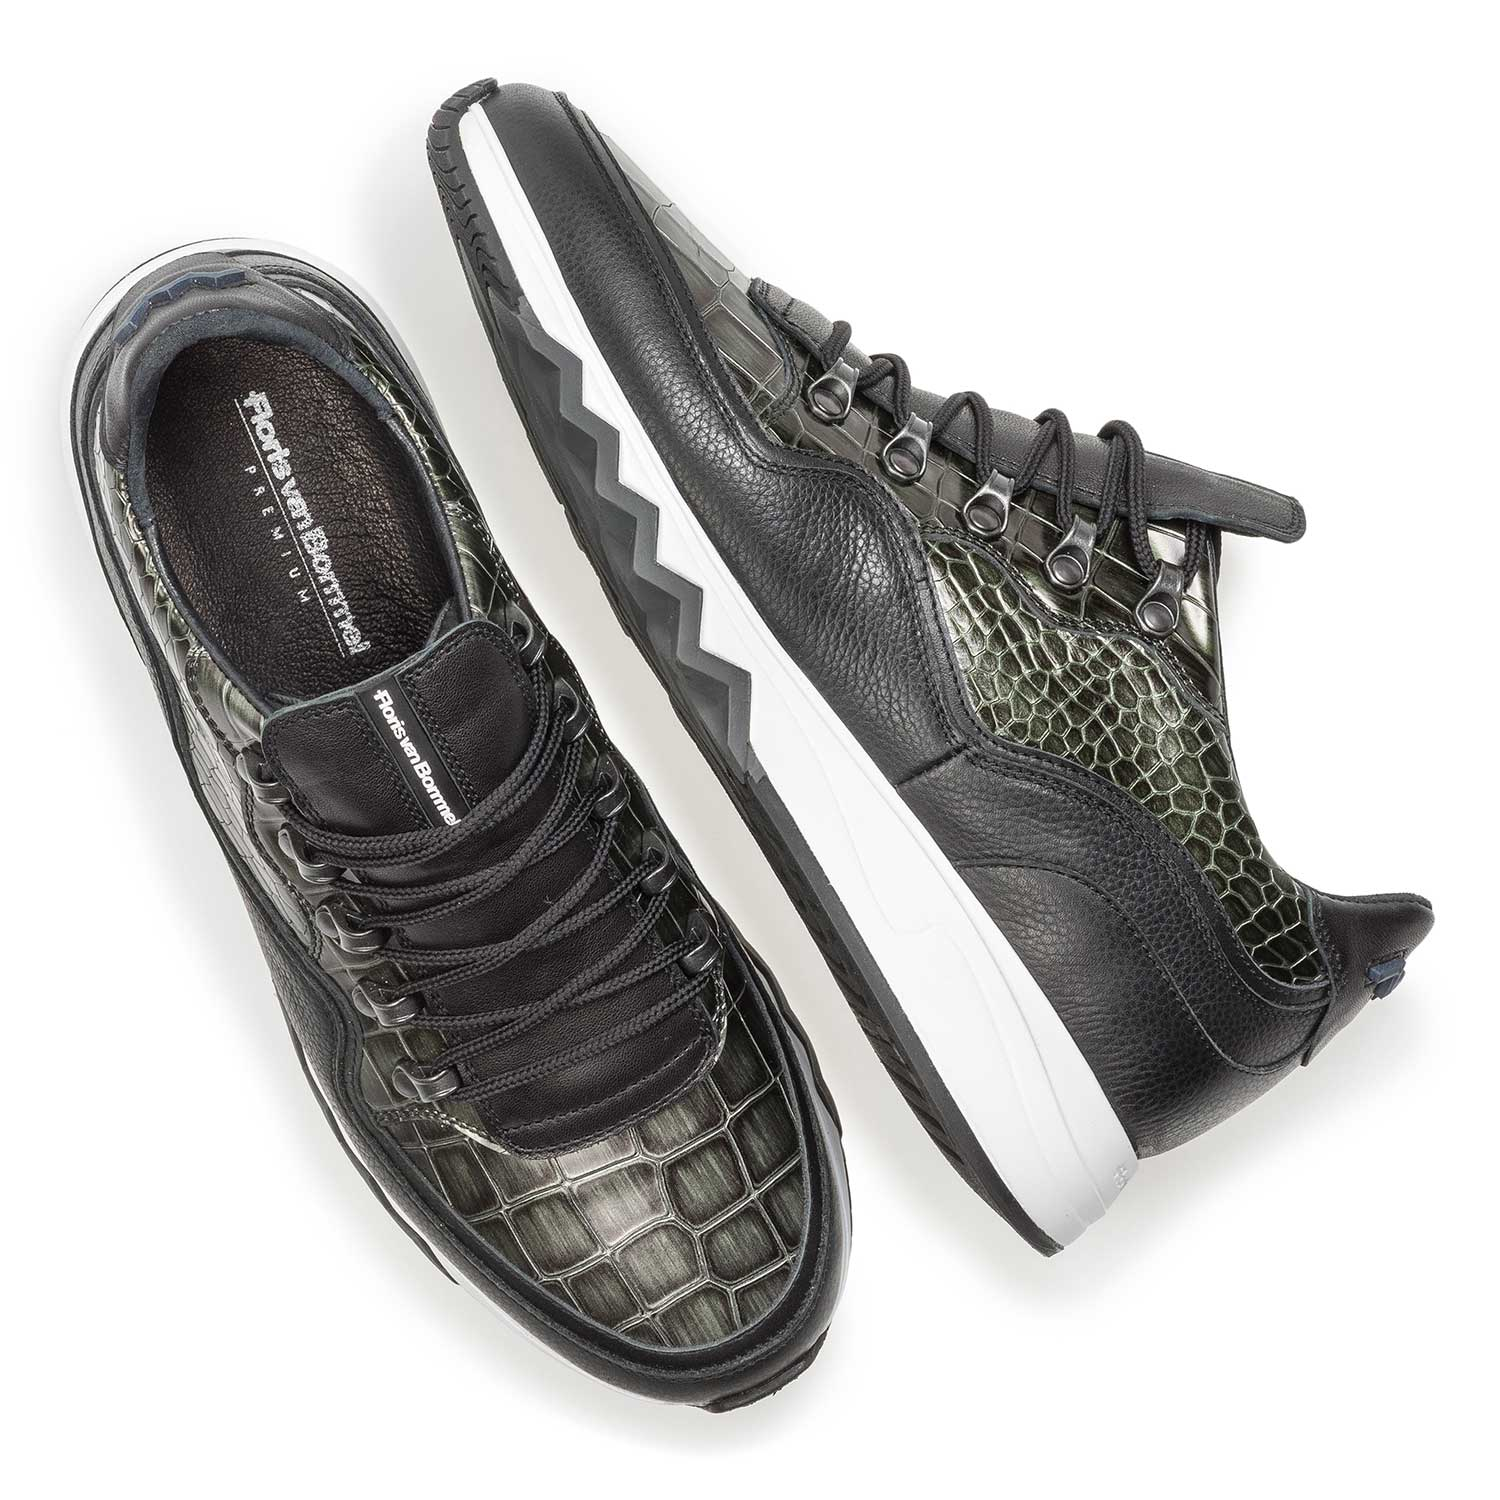 16394/02 - Premium green printed metallic leather sneaker